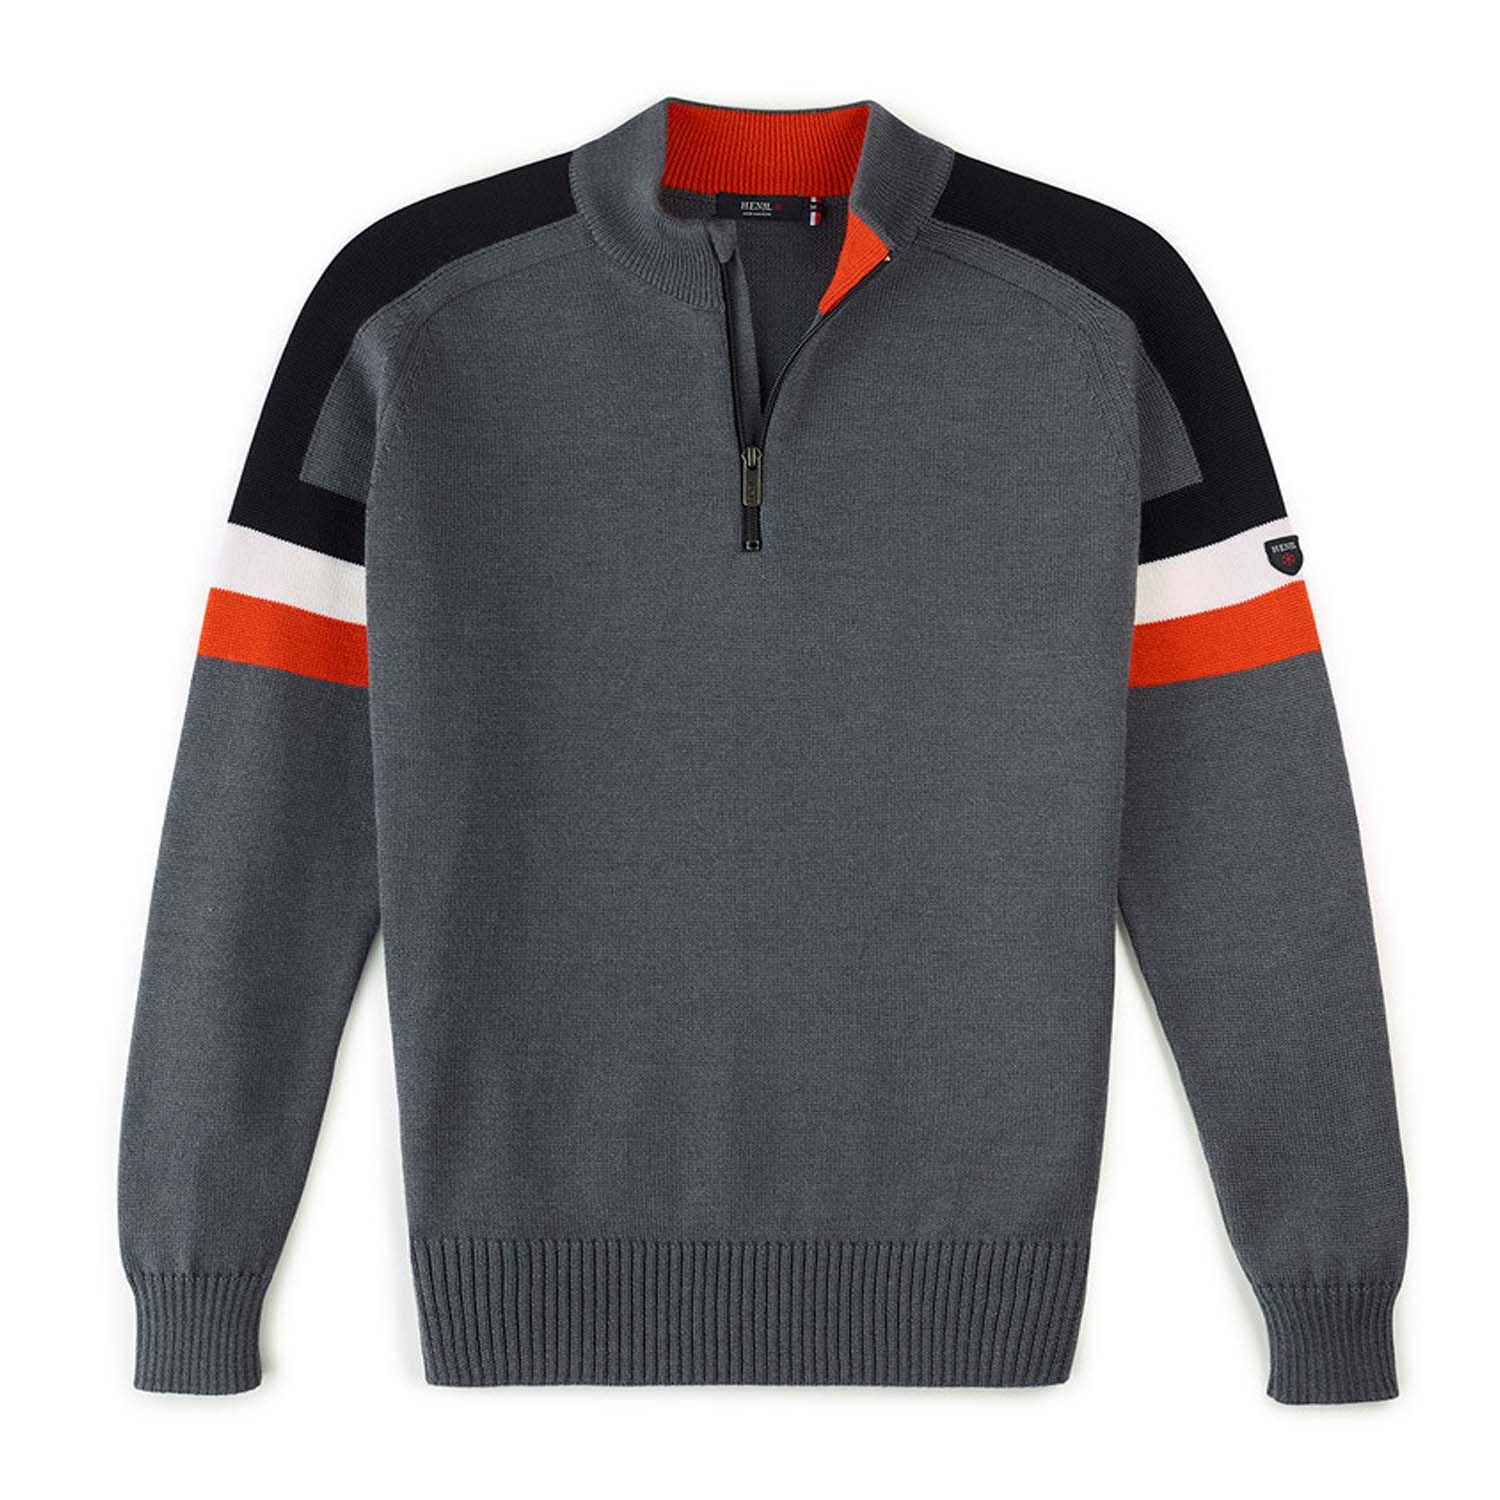 Henjl Patrol Half Zip Sweater Grey 2020